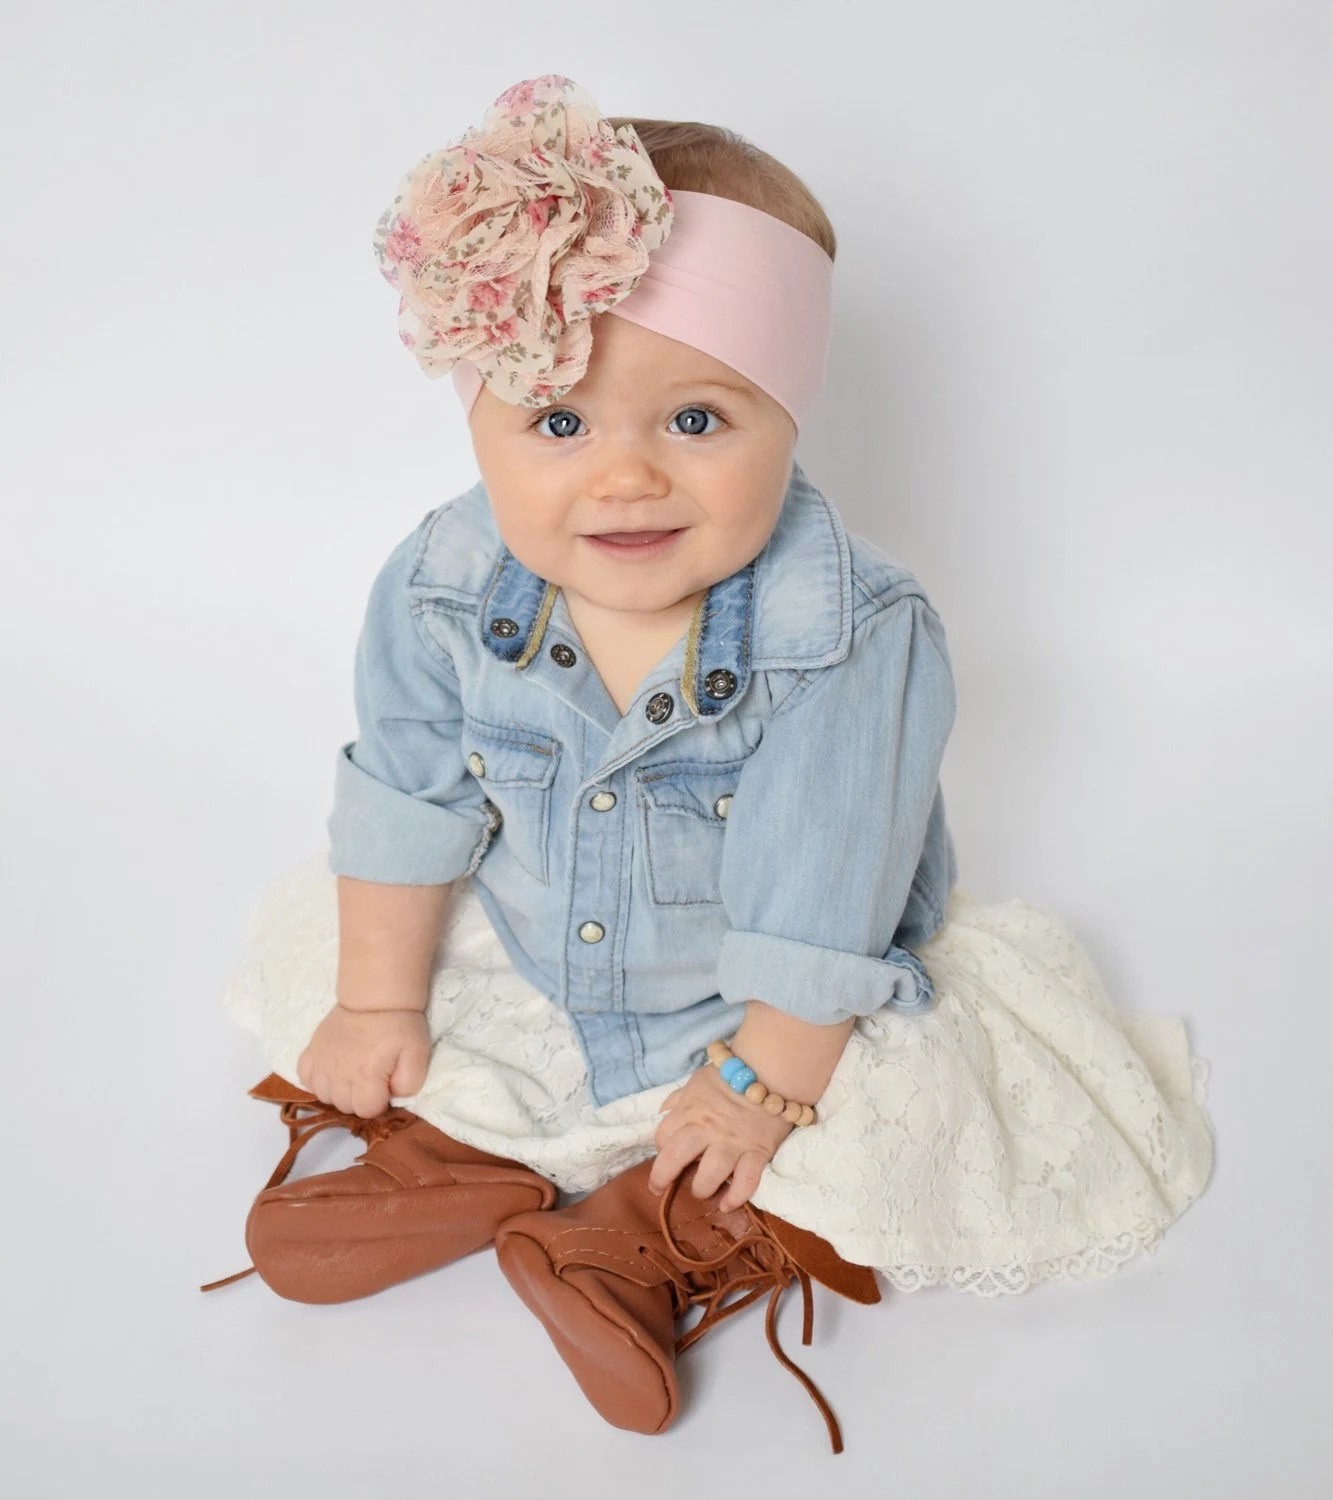 Pink Baby Headwrap Floral Headband Flower Kid By WhimsyWhiskey